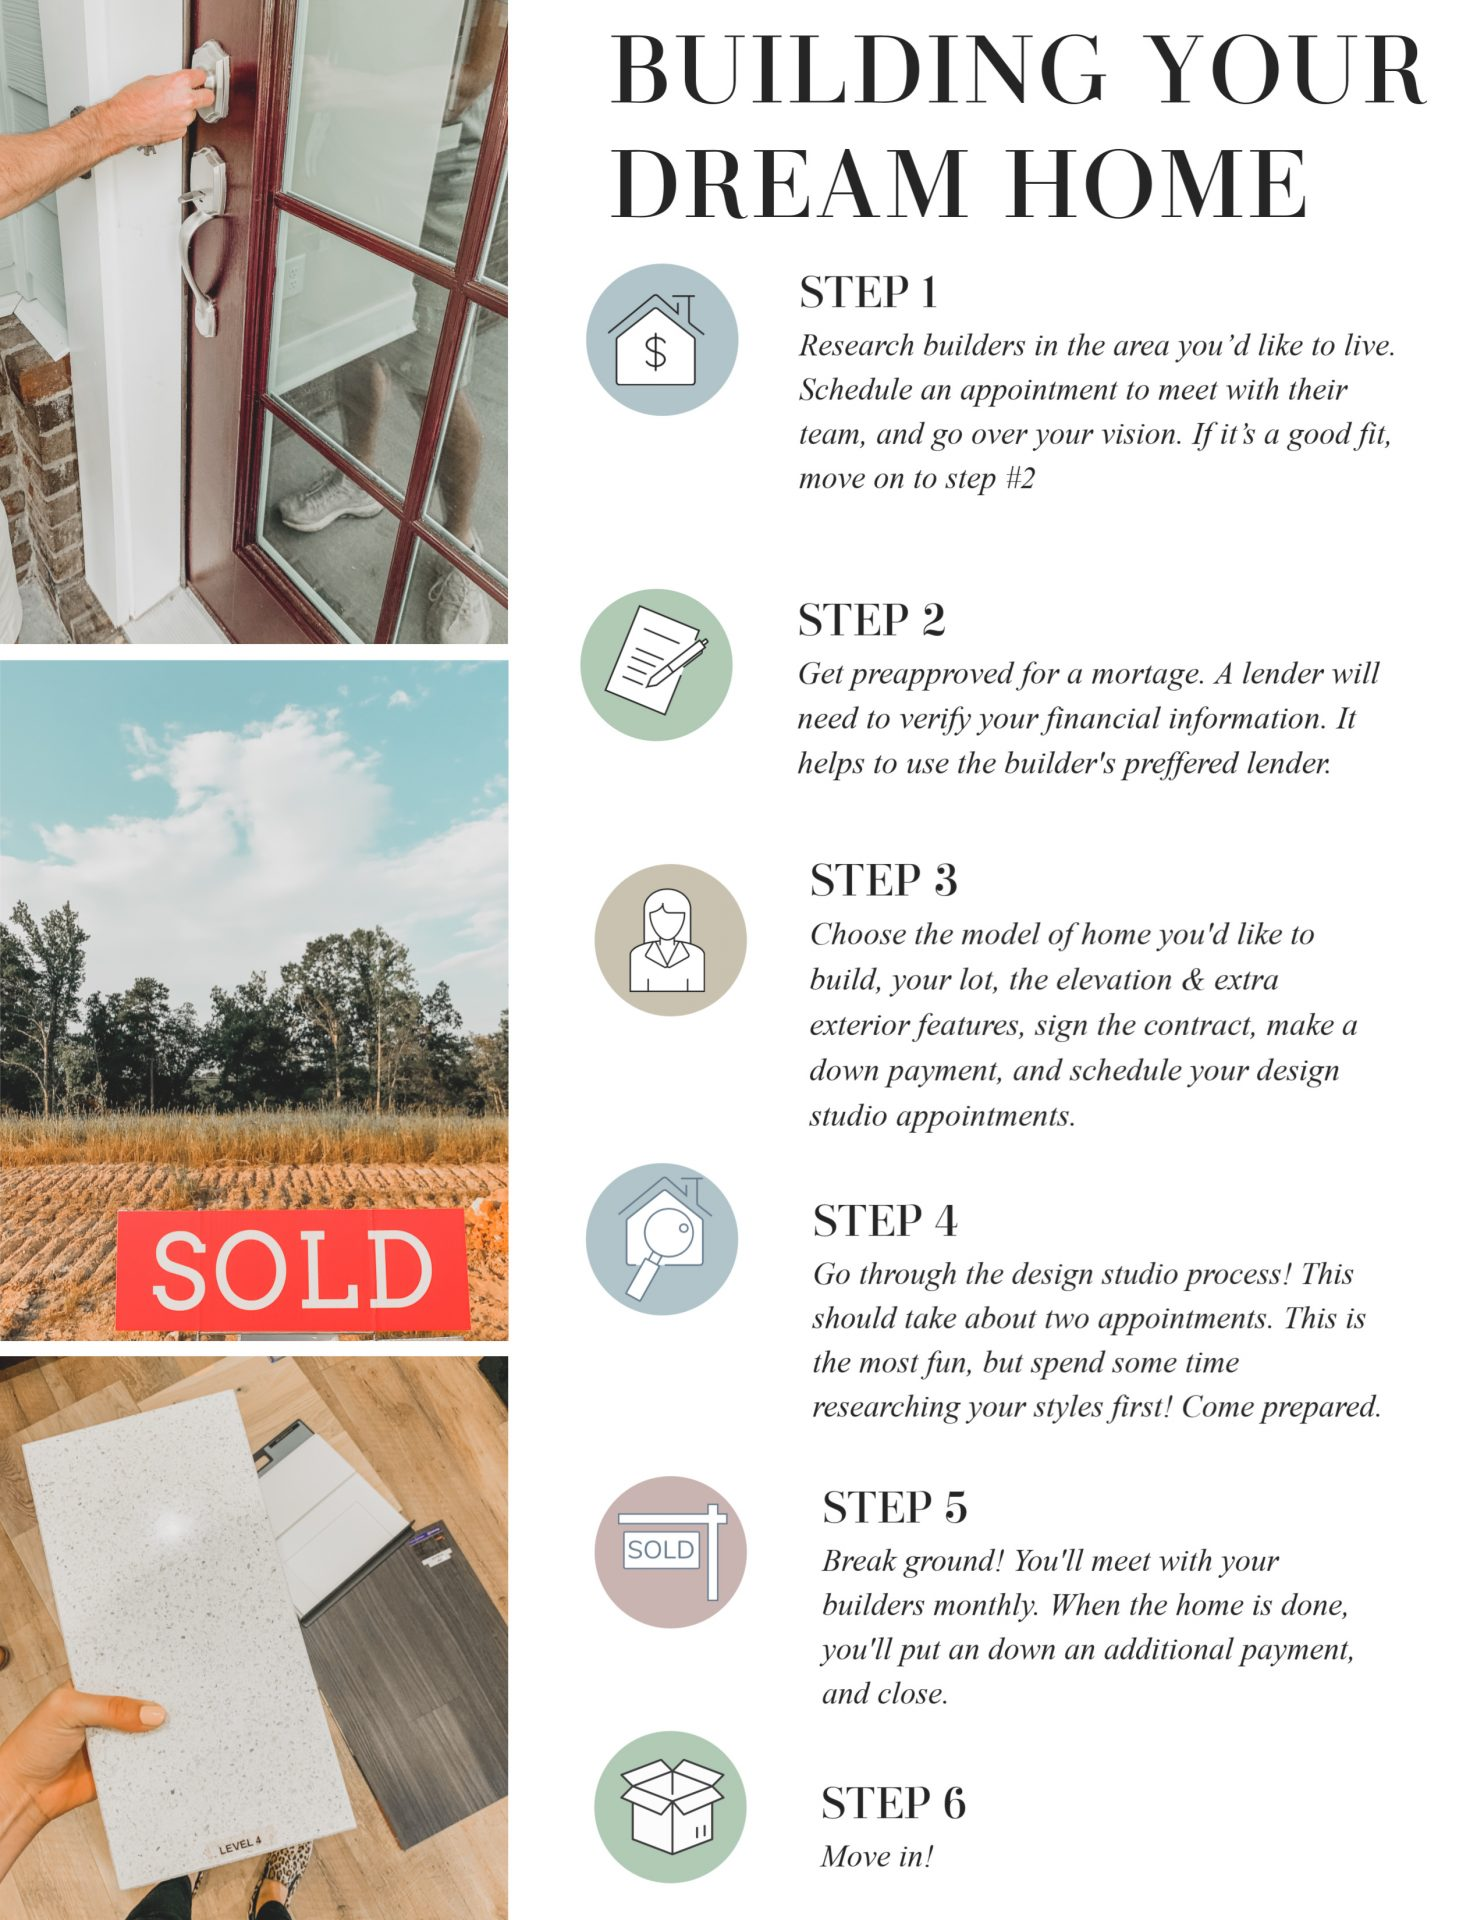 Building your first home, building a home, the design studio, how to build a house, steps to build a home, how to build a house, tips, Charlotte nc, masons bend, fielding homes, builders, how to build a house, buying a house, buying a home, building a home